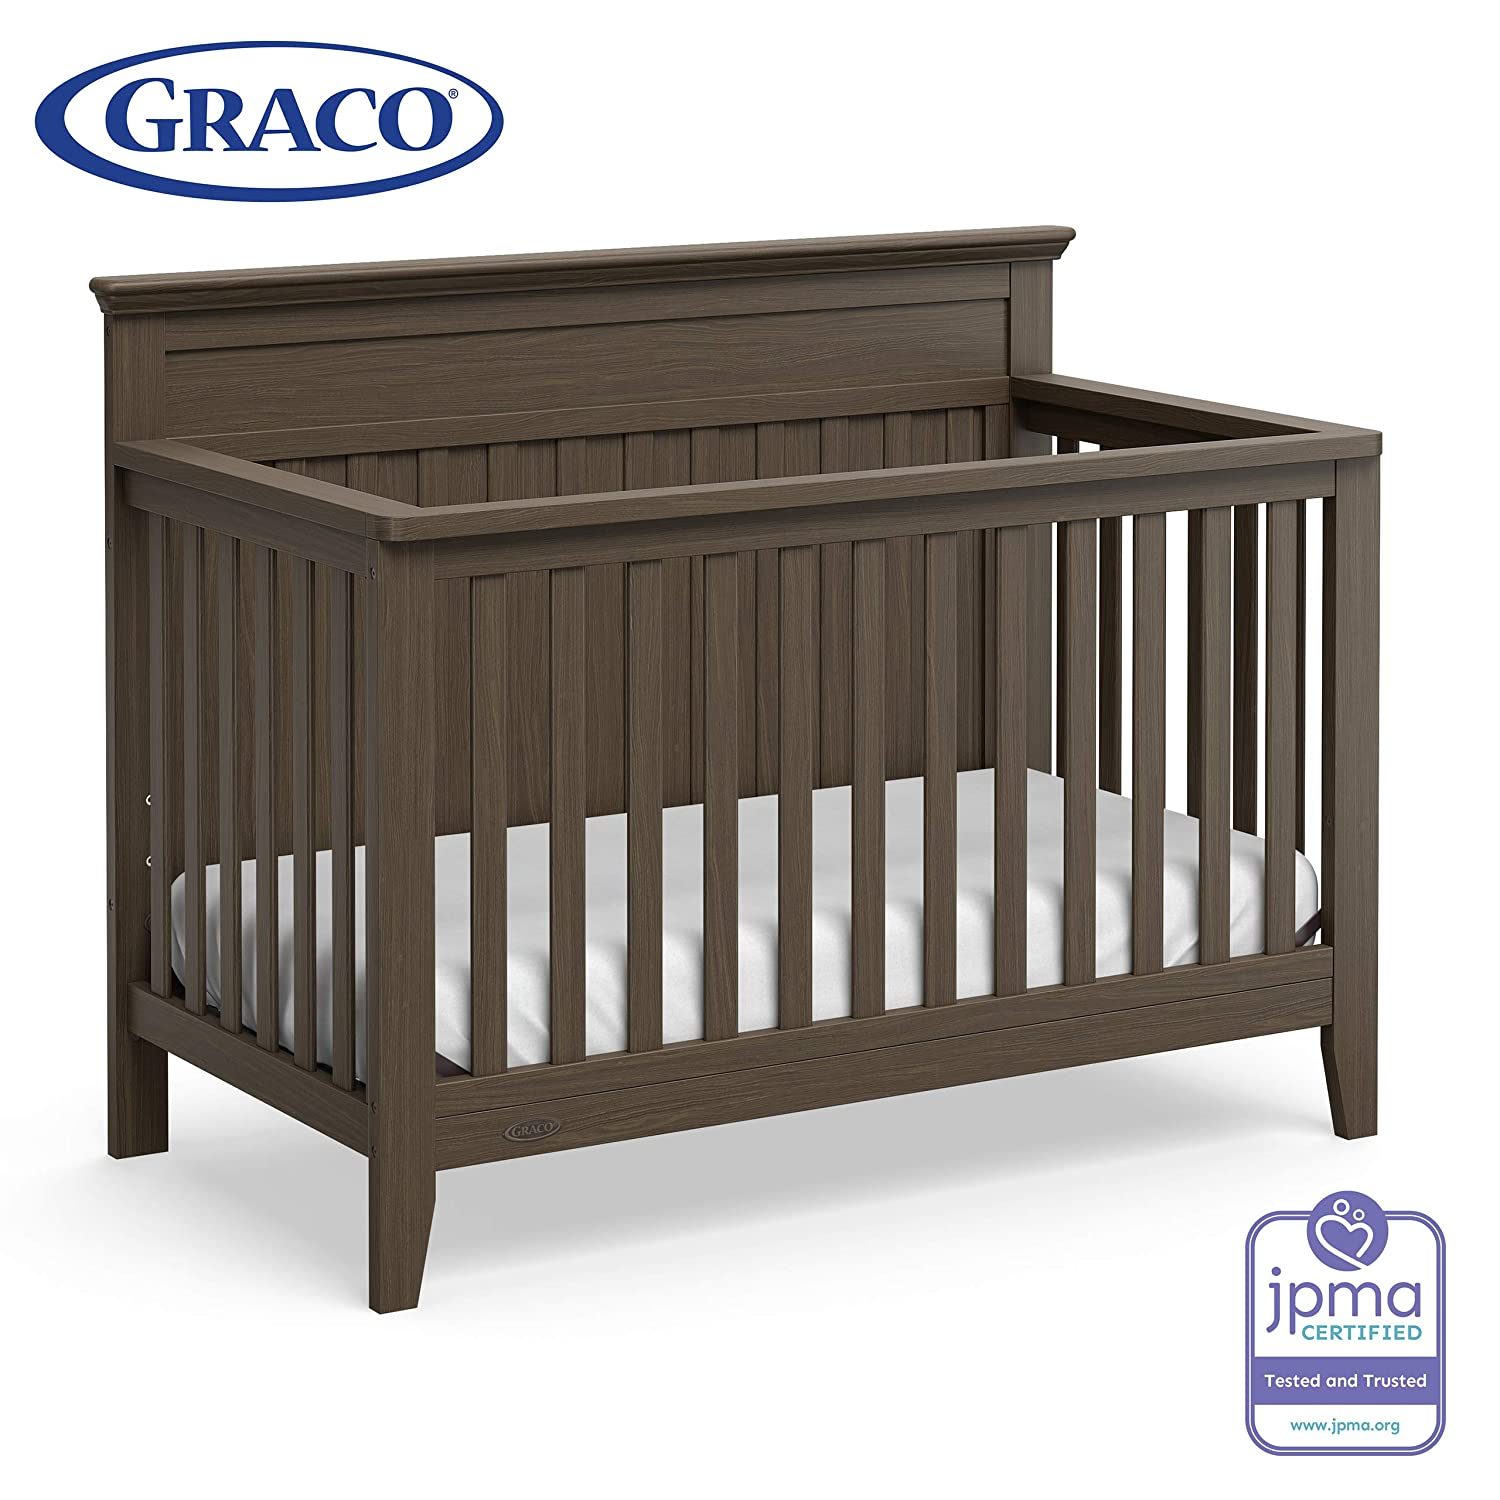 Graco Georgia 4-in-1 Convertible Crib Slate Gray Easily Converts to Toddler Bed, Daybed, and Full-Size Bed, 3-Position Adjustable Mattress Support Base, Rustic Style